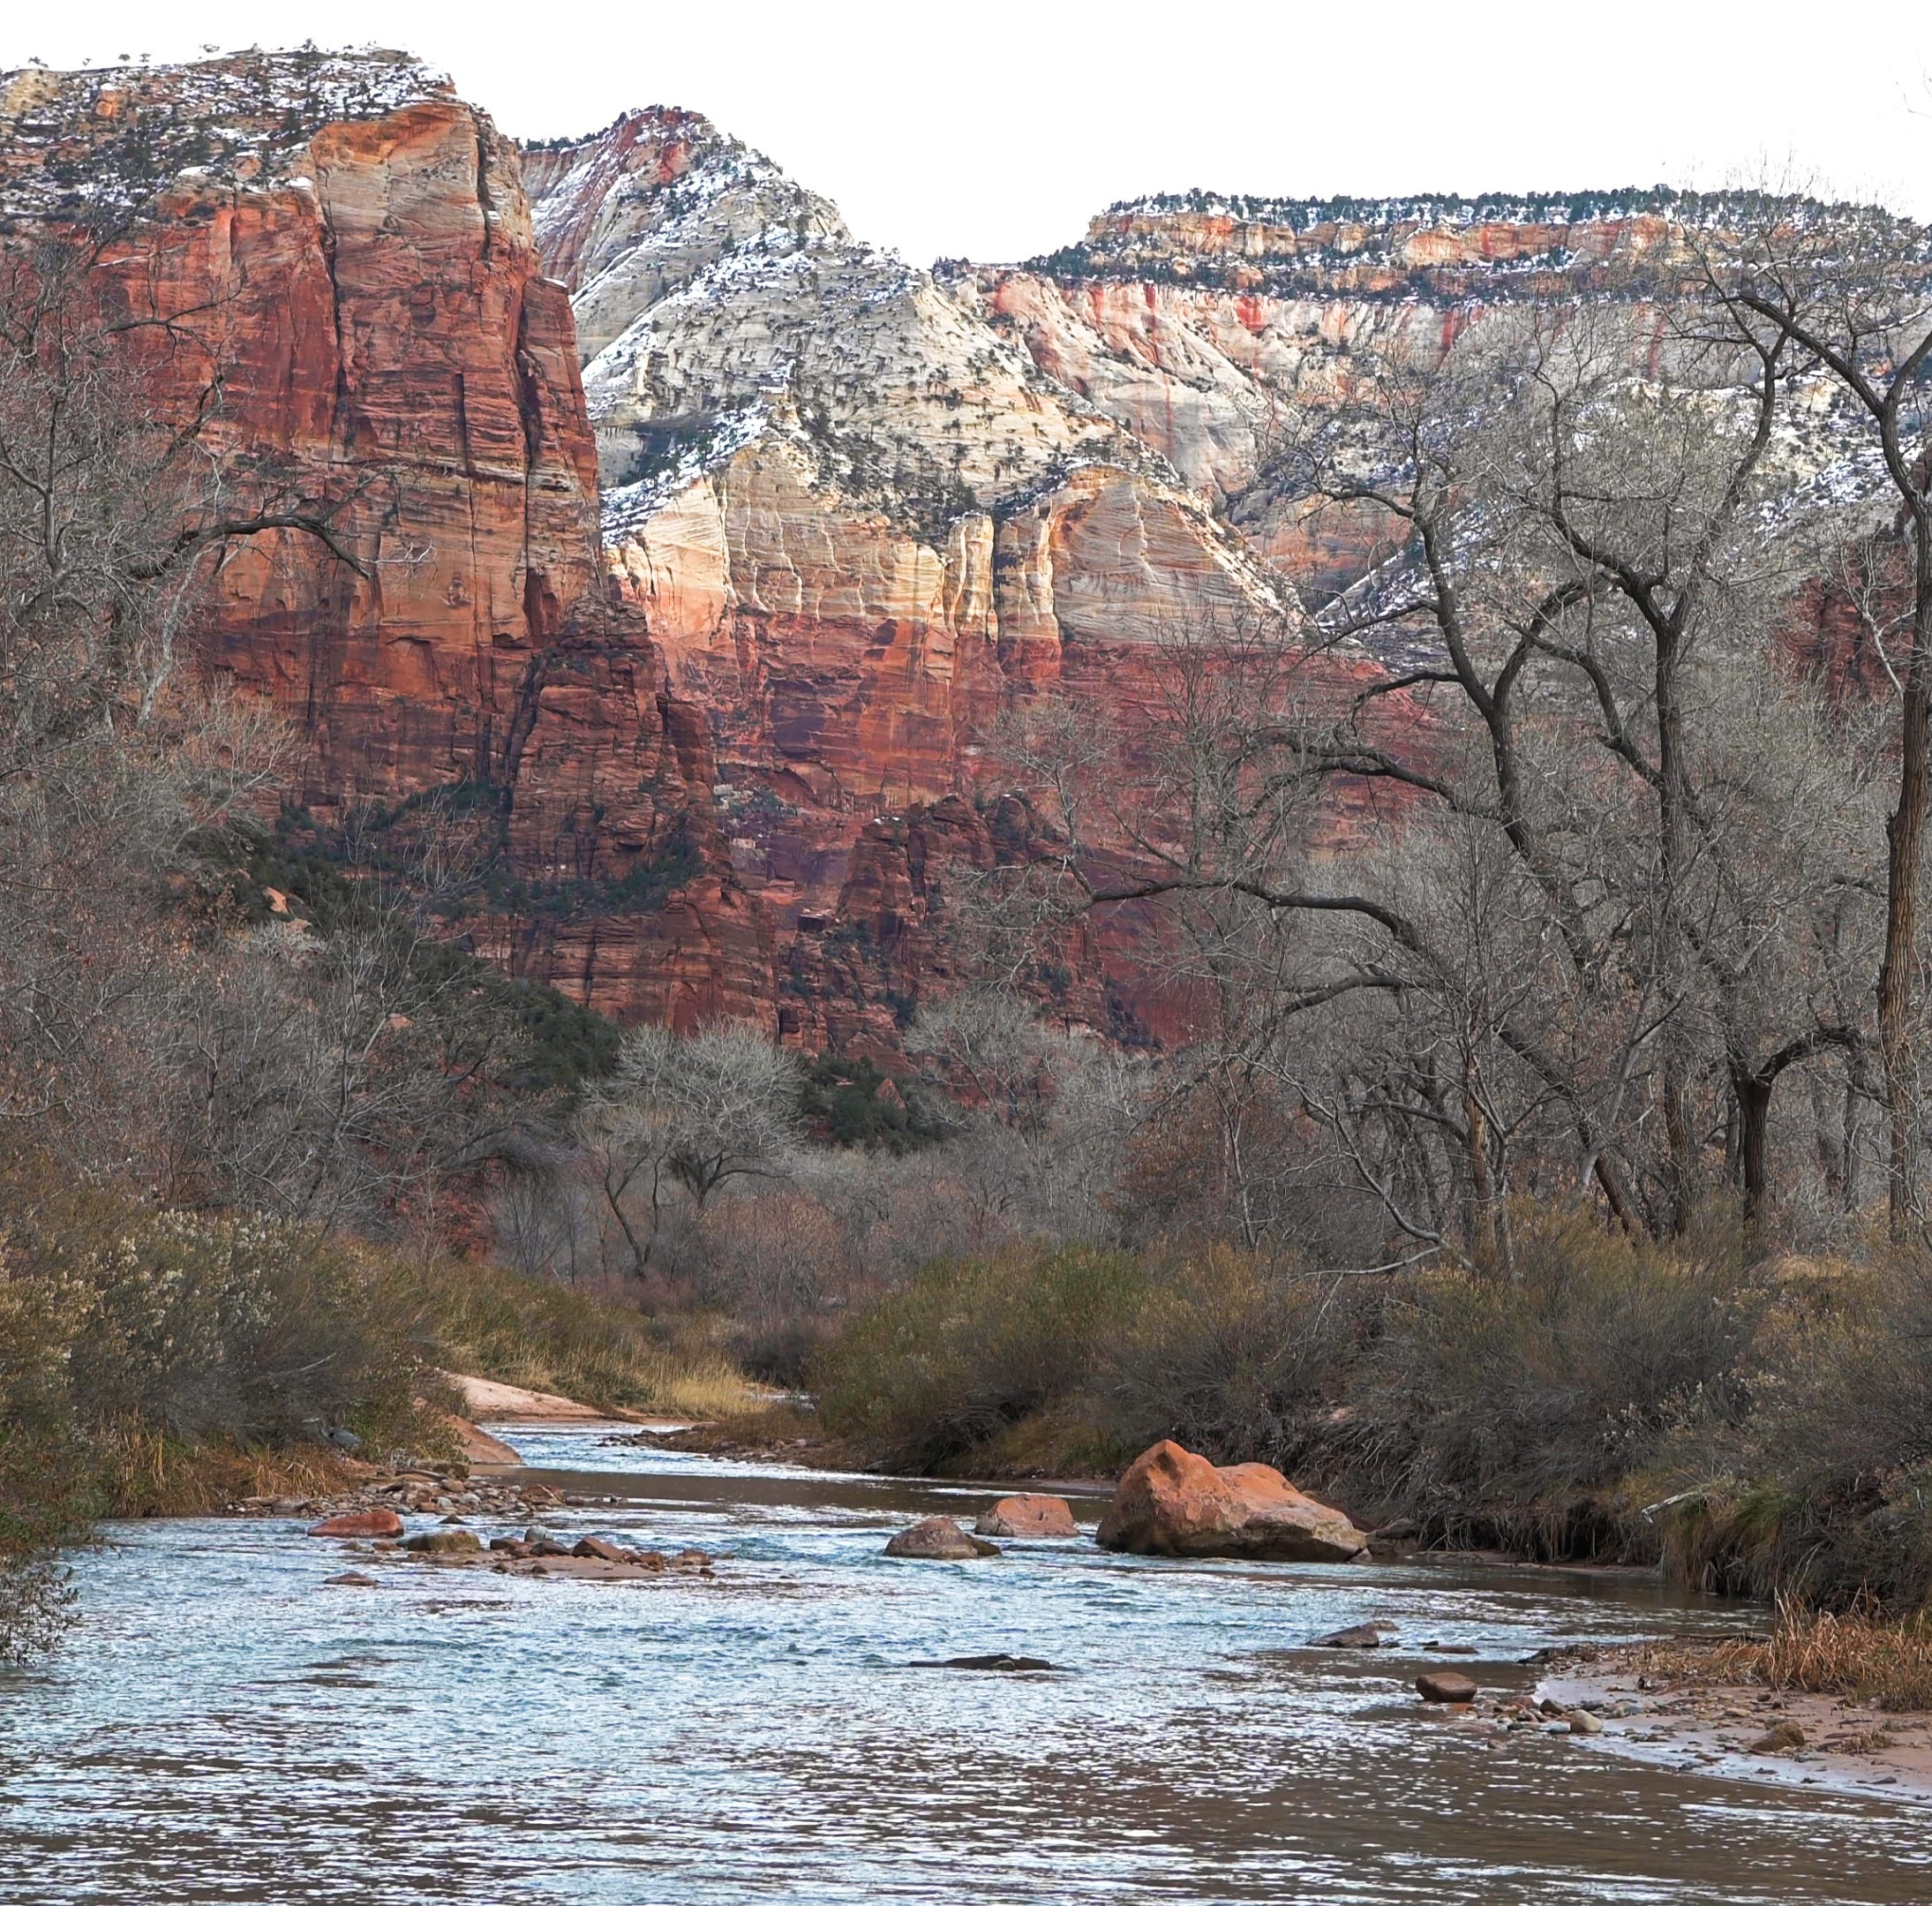 Man caught in quicksand spends nearly two wintery days inside Zion National Park